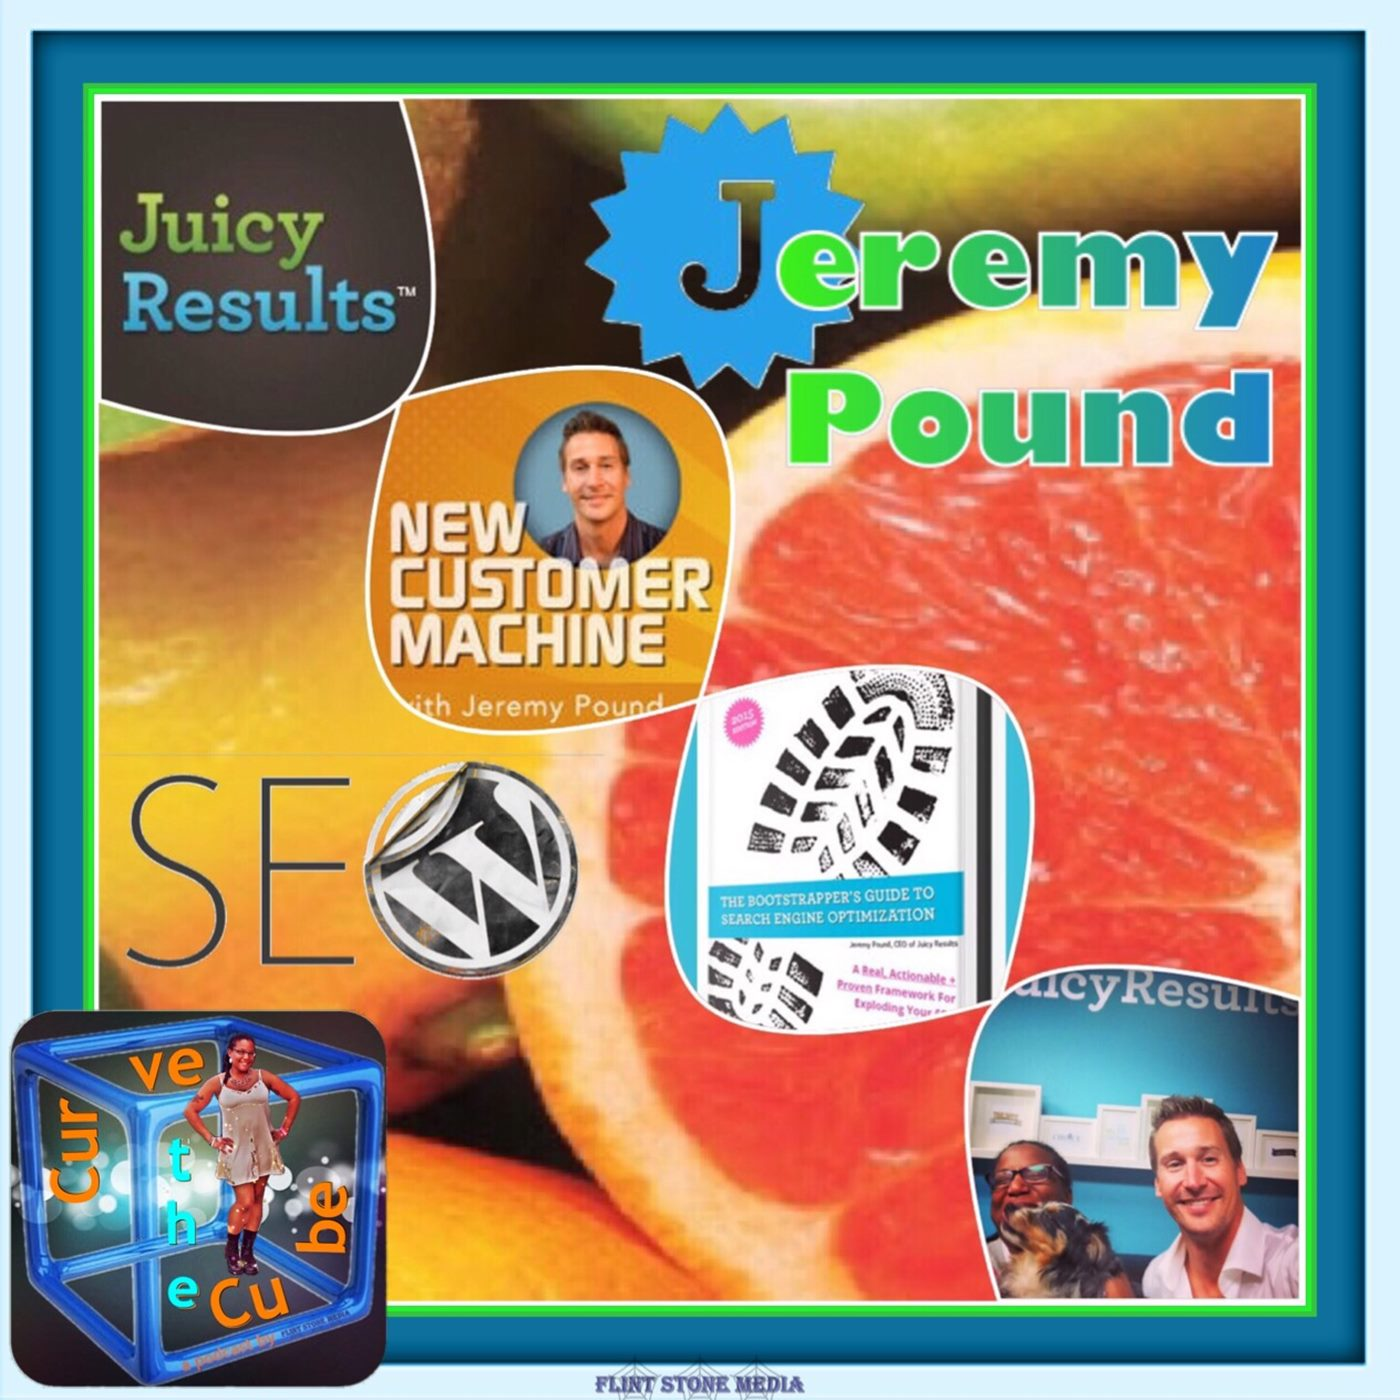 Marketing guru, author, and CEO of Juicy Results, Jeremy Pound, on the Curve the Cube Podcast!!!